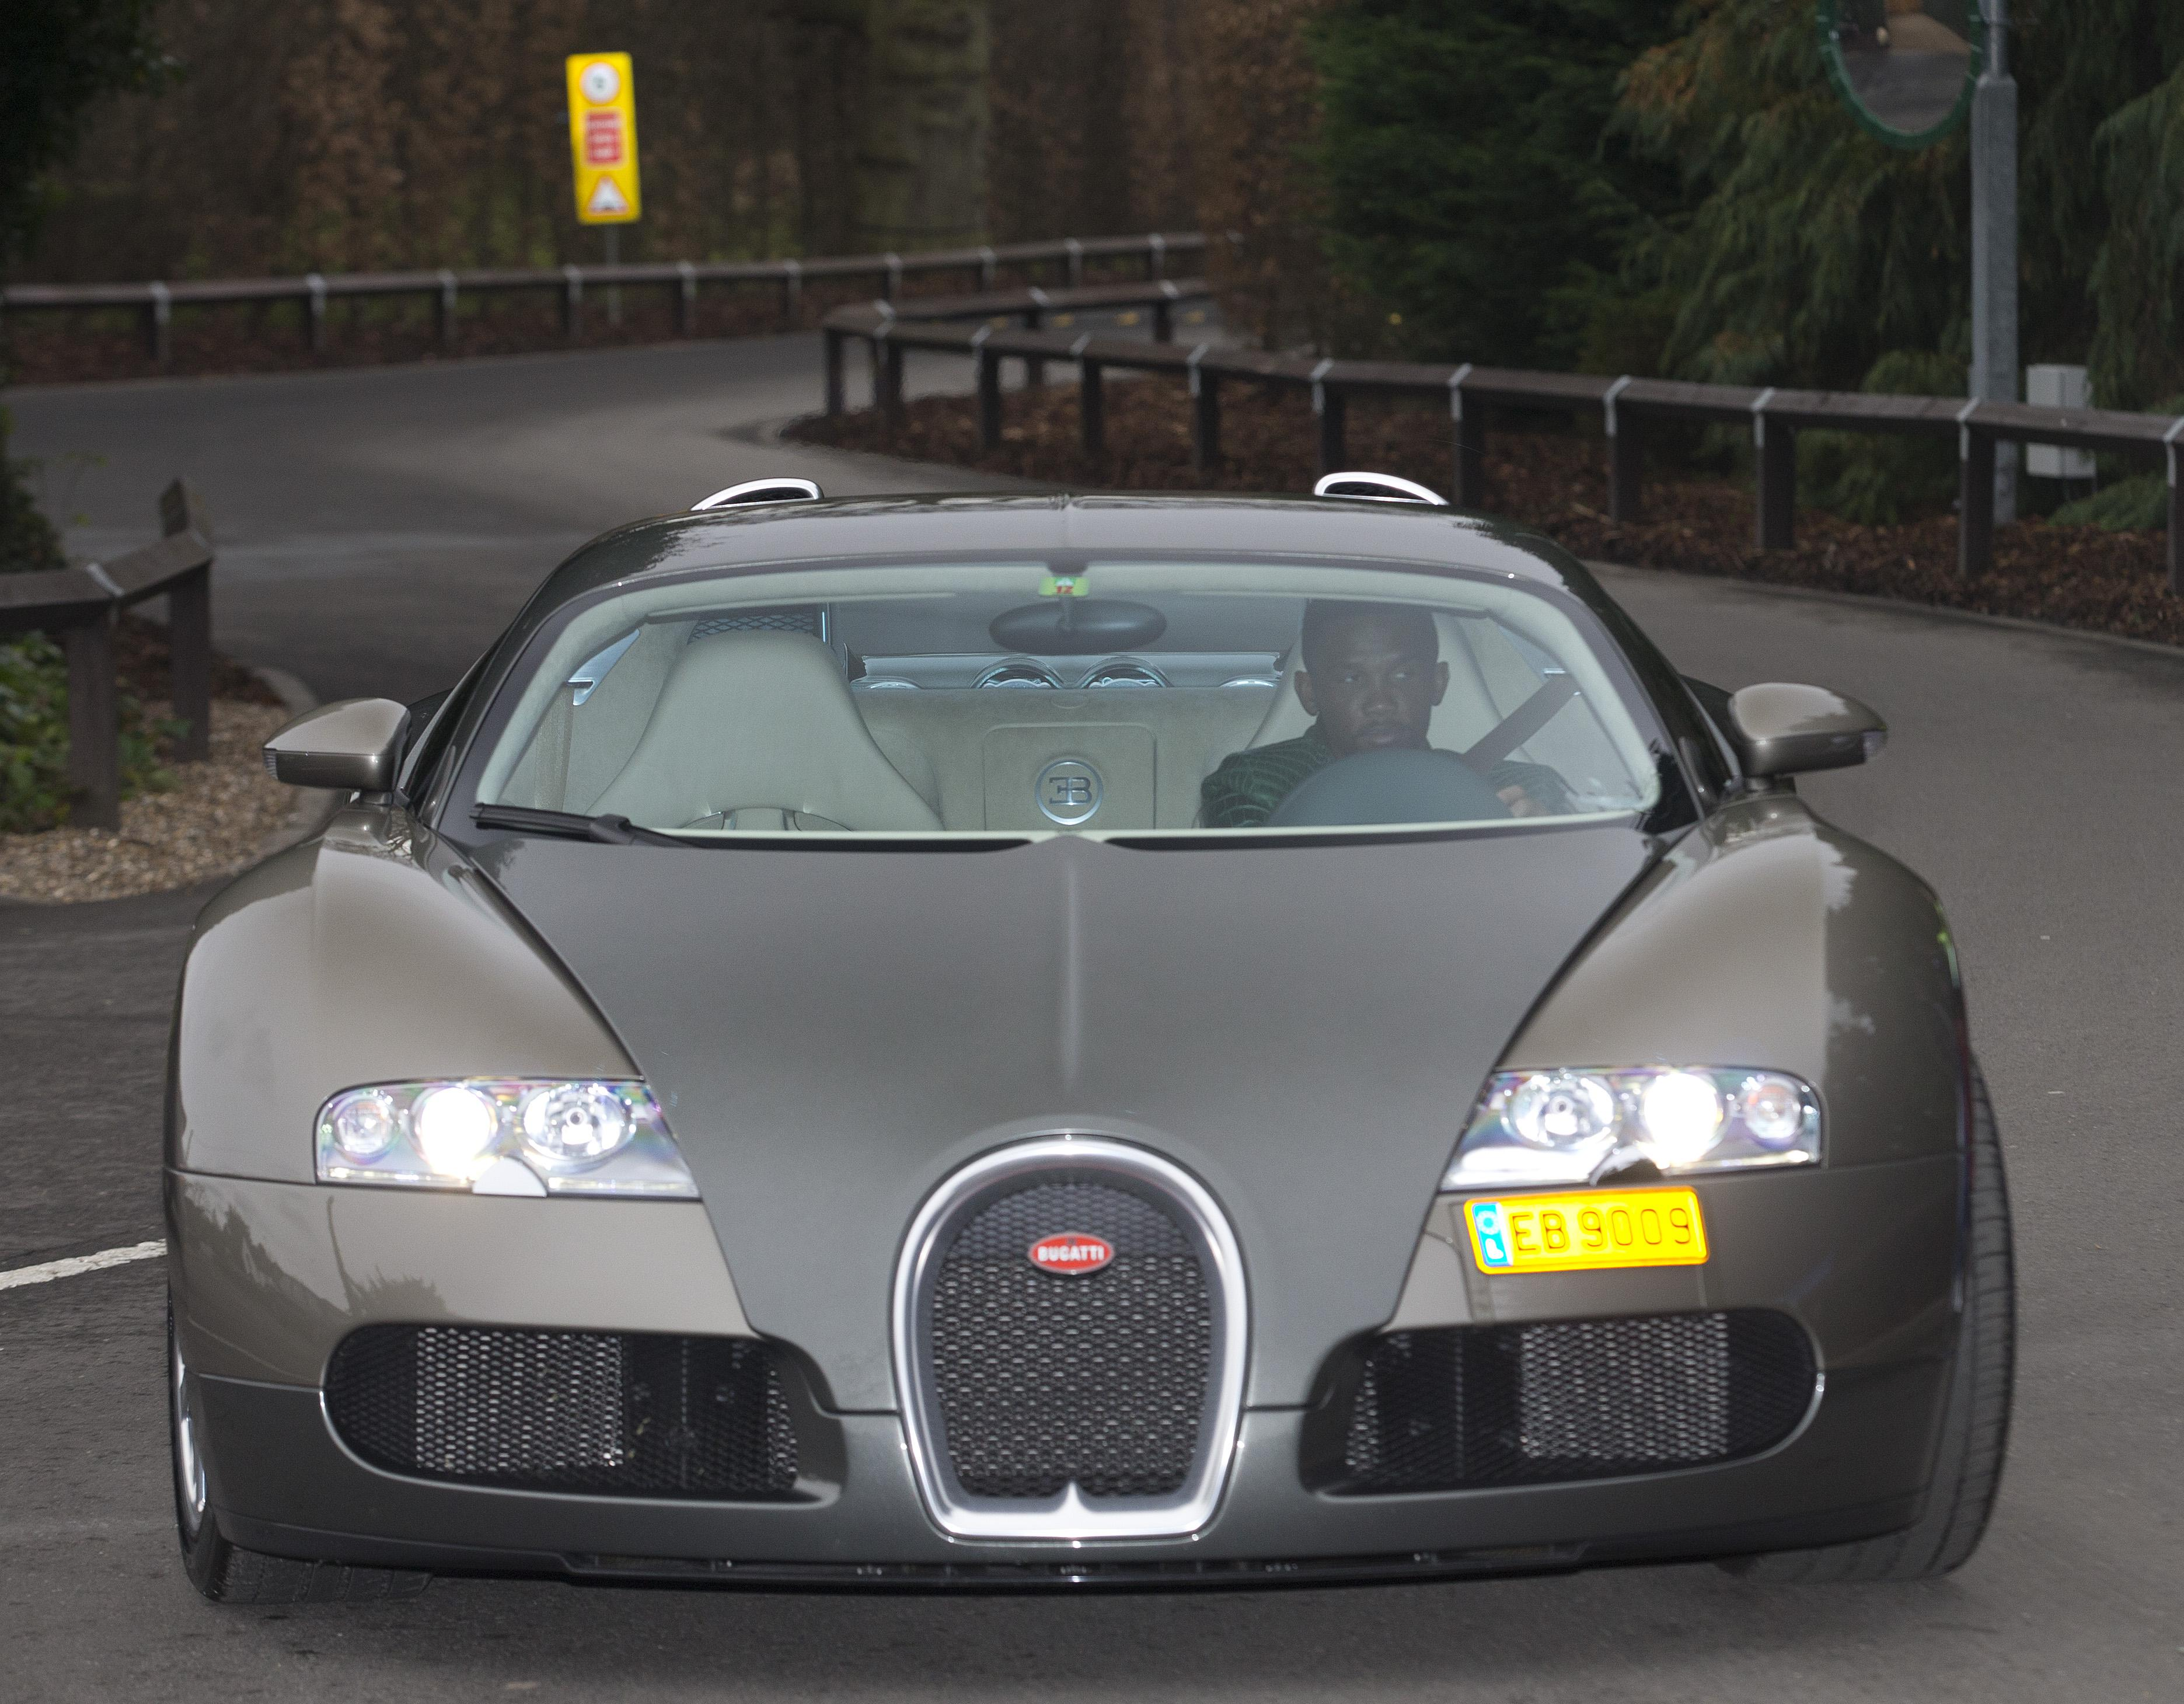 Samuel Eto landed so many big-money moves he drove some of the most expensive cars